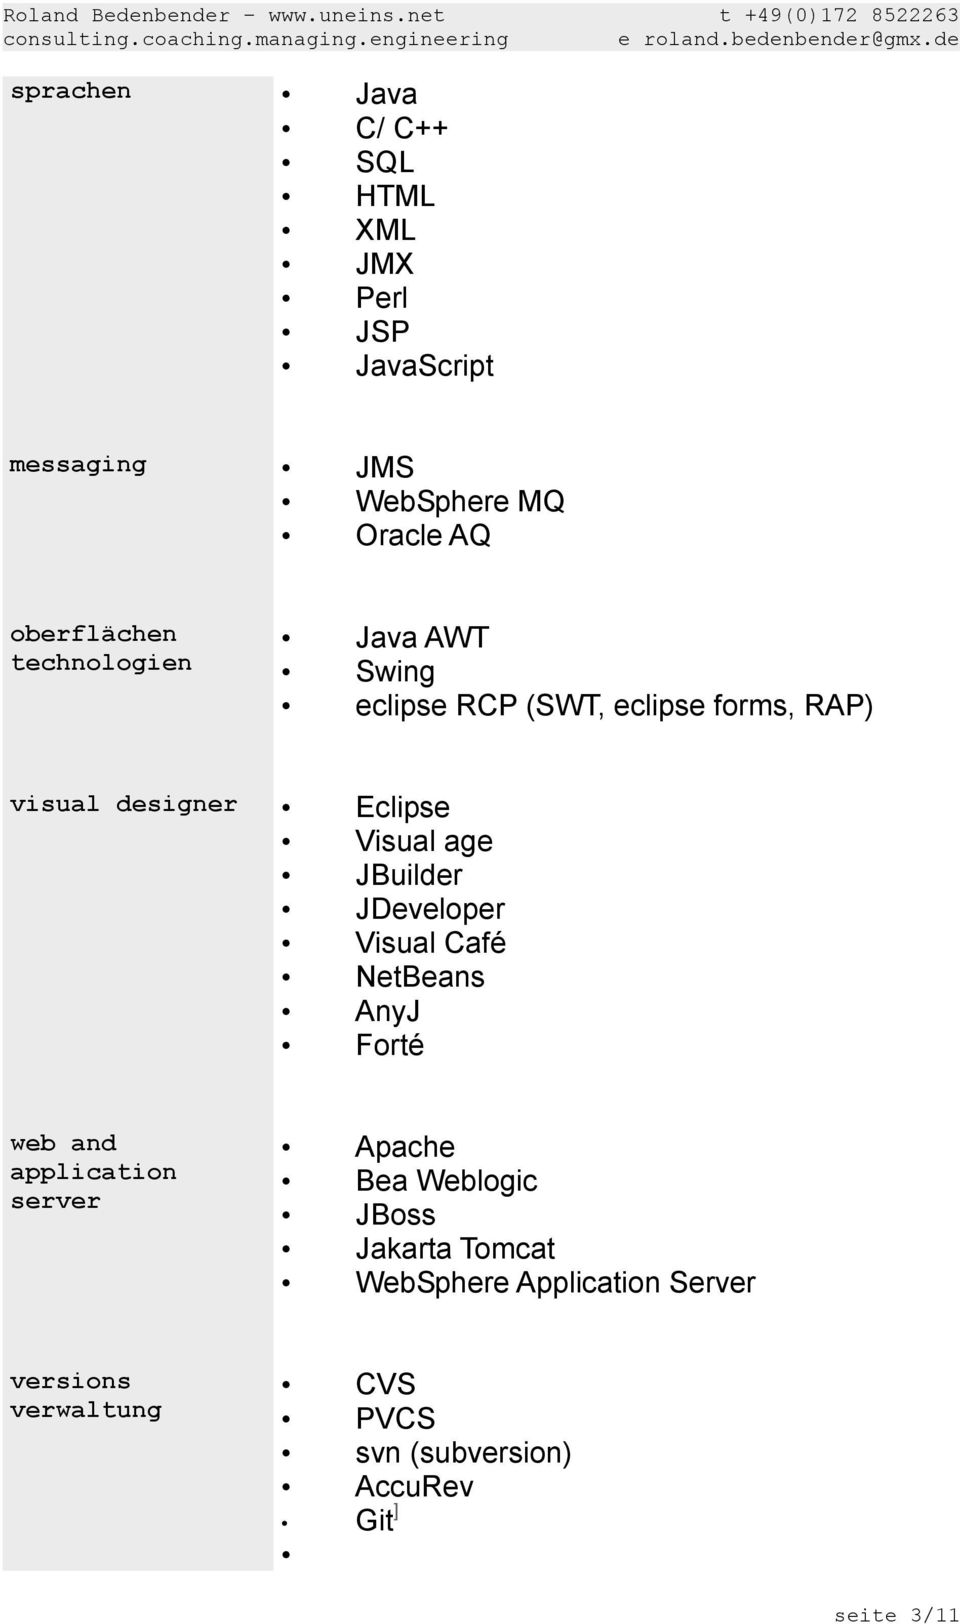 oberflächen technologien Java AWT Swing eclipse RCP (SWT, eclipse forms, RAP) visual designer Eclipse Visual age